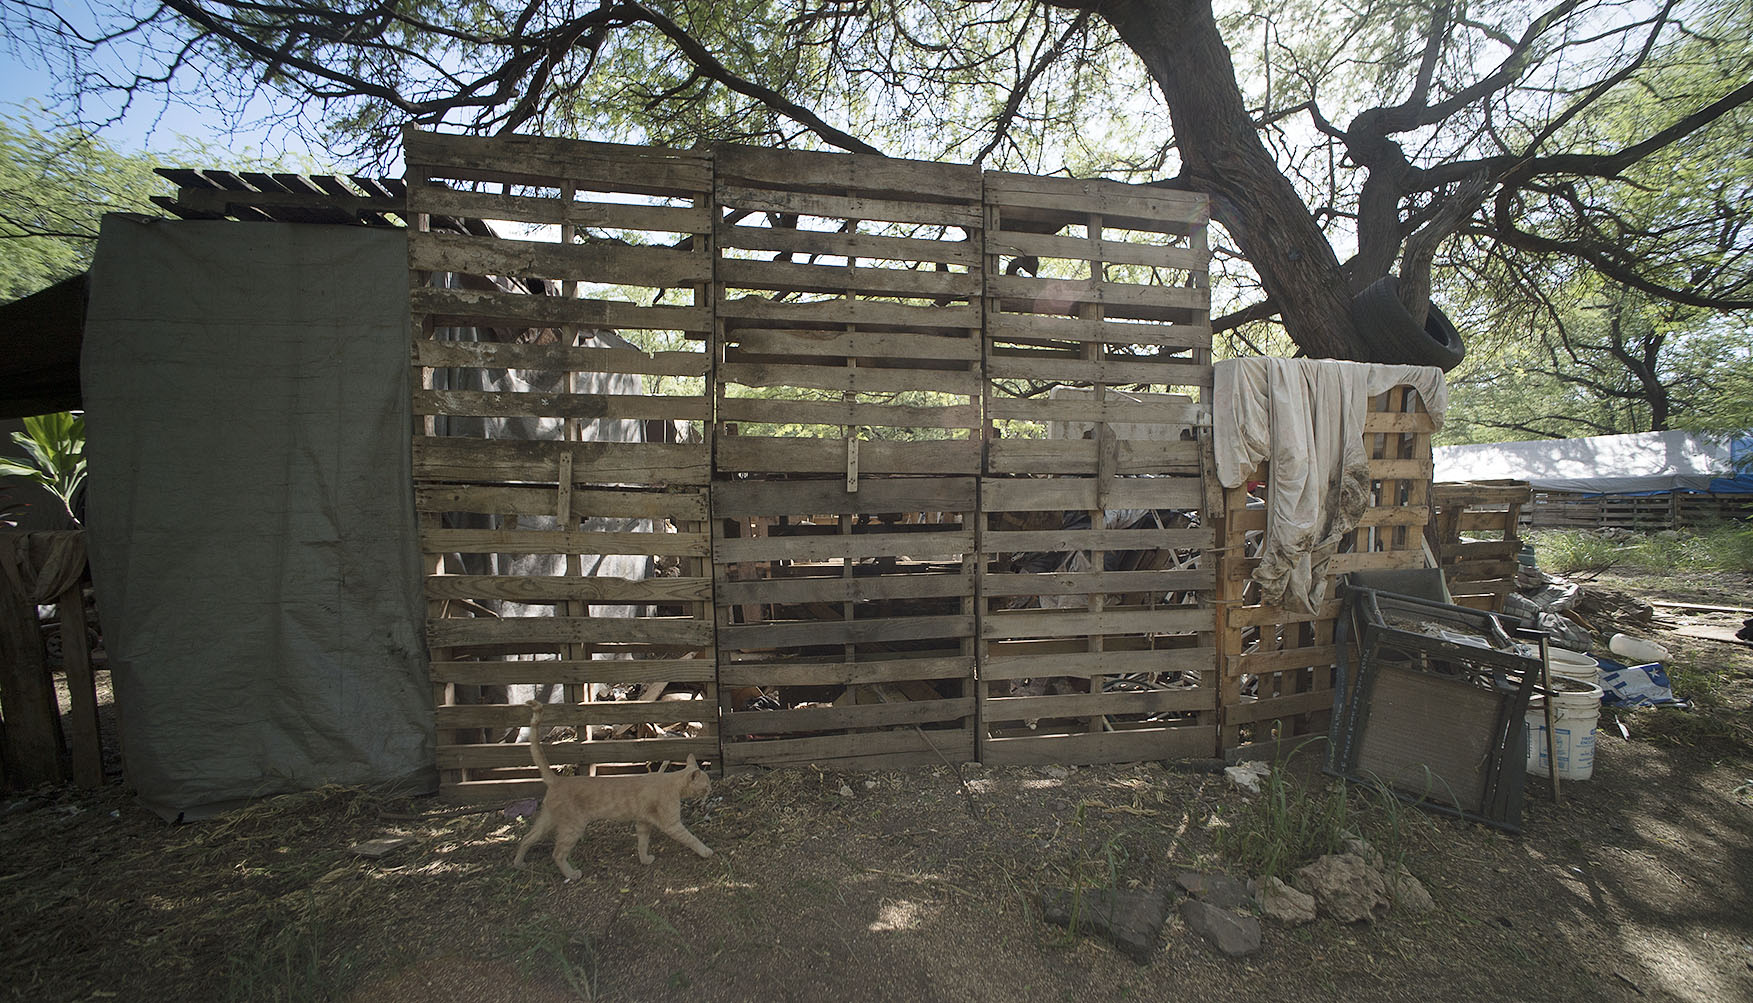 <p>Wood pallets are the basic building blocks of most structures in The Harbor.</p>